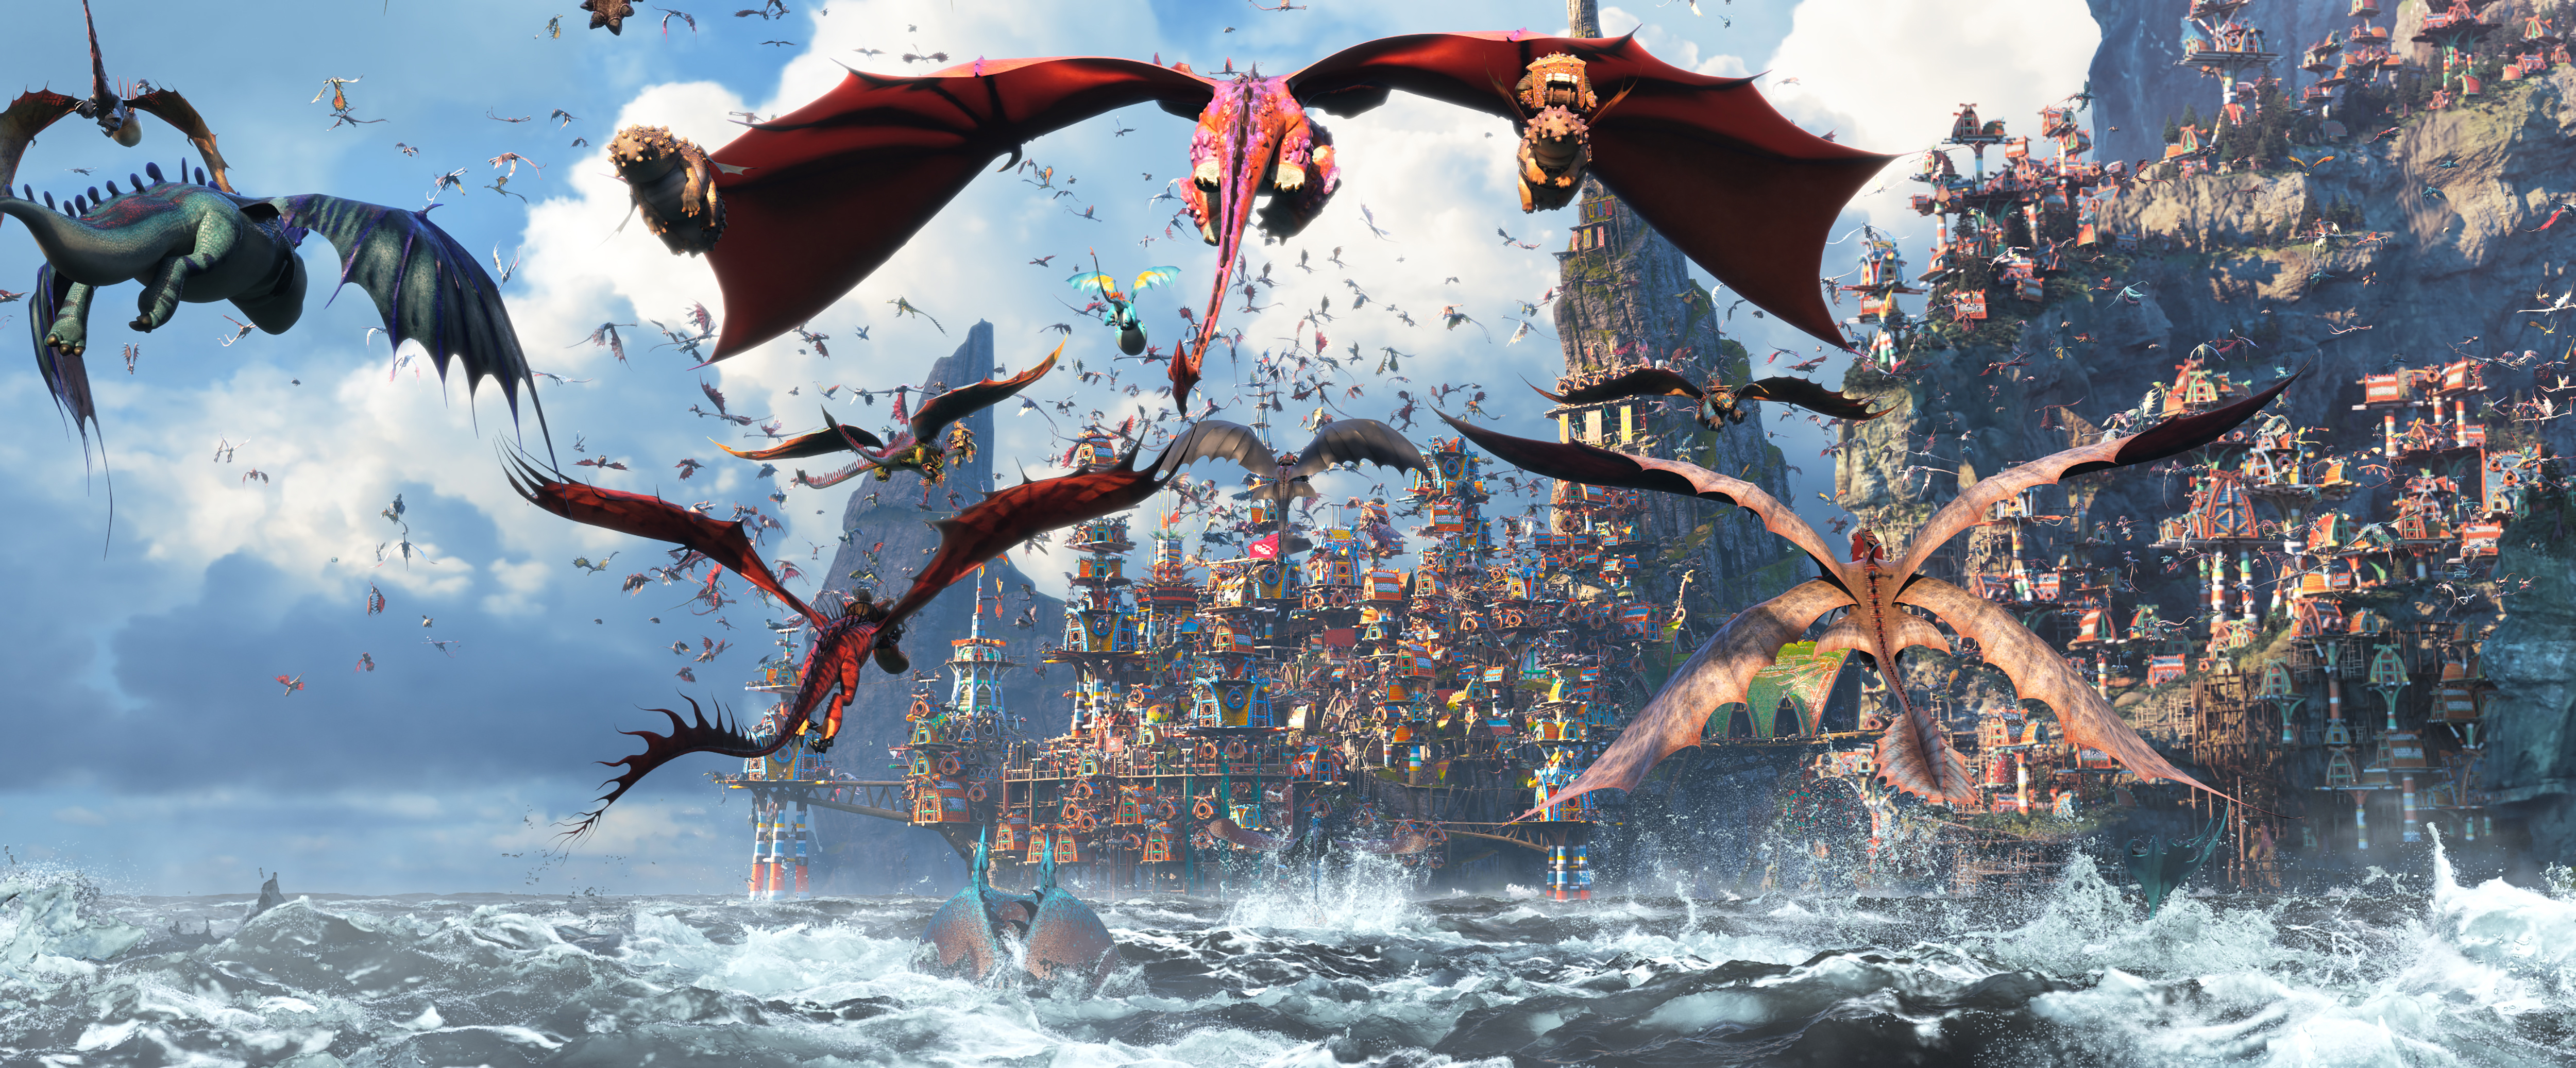 Box Office World How To Train Your Dragon The Hidden World Beats Box Office